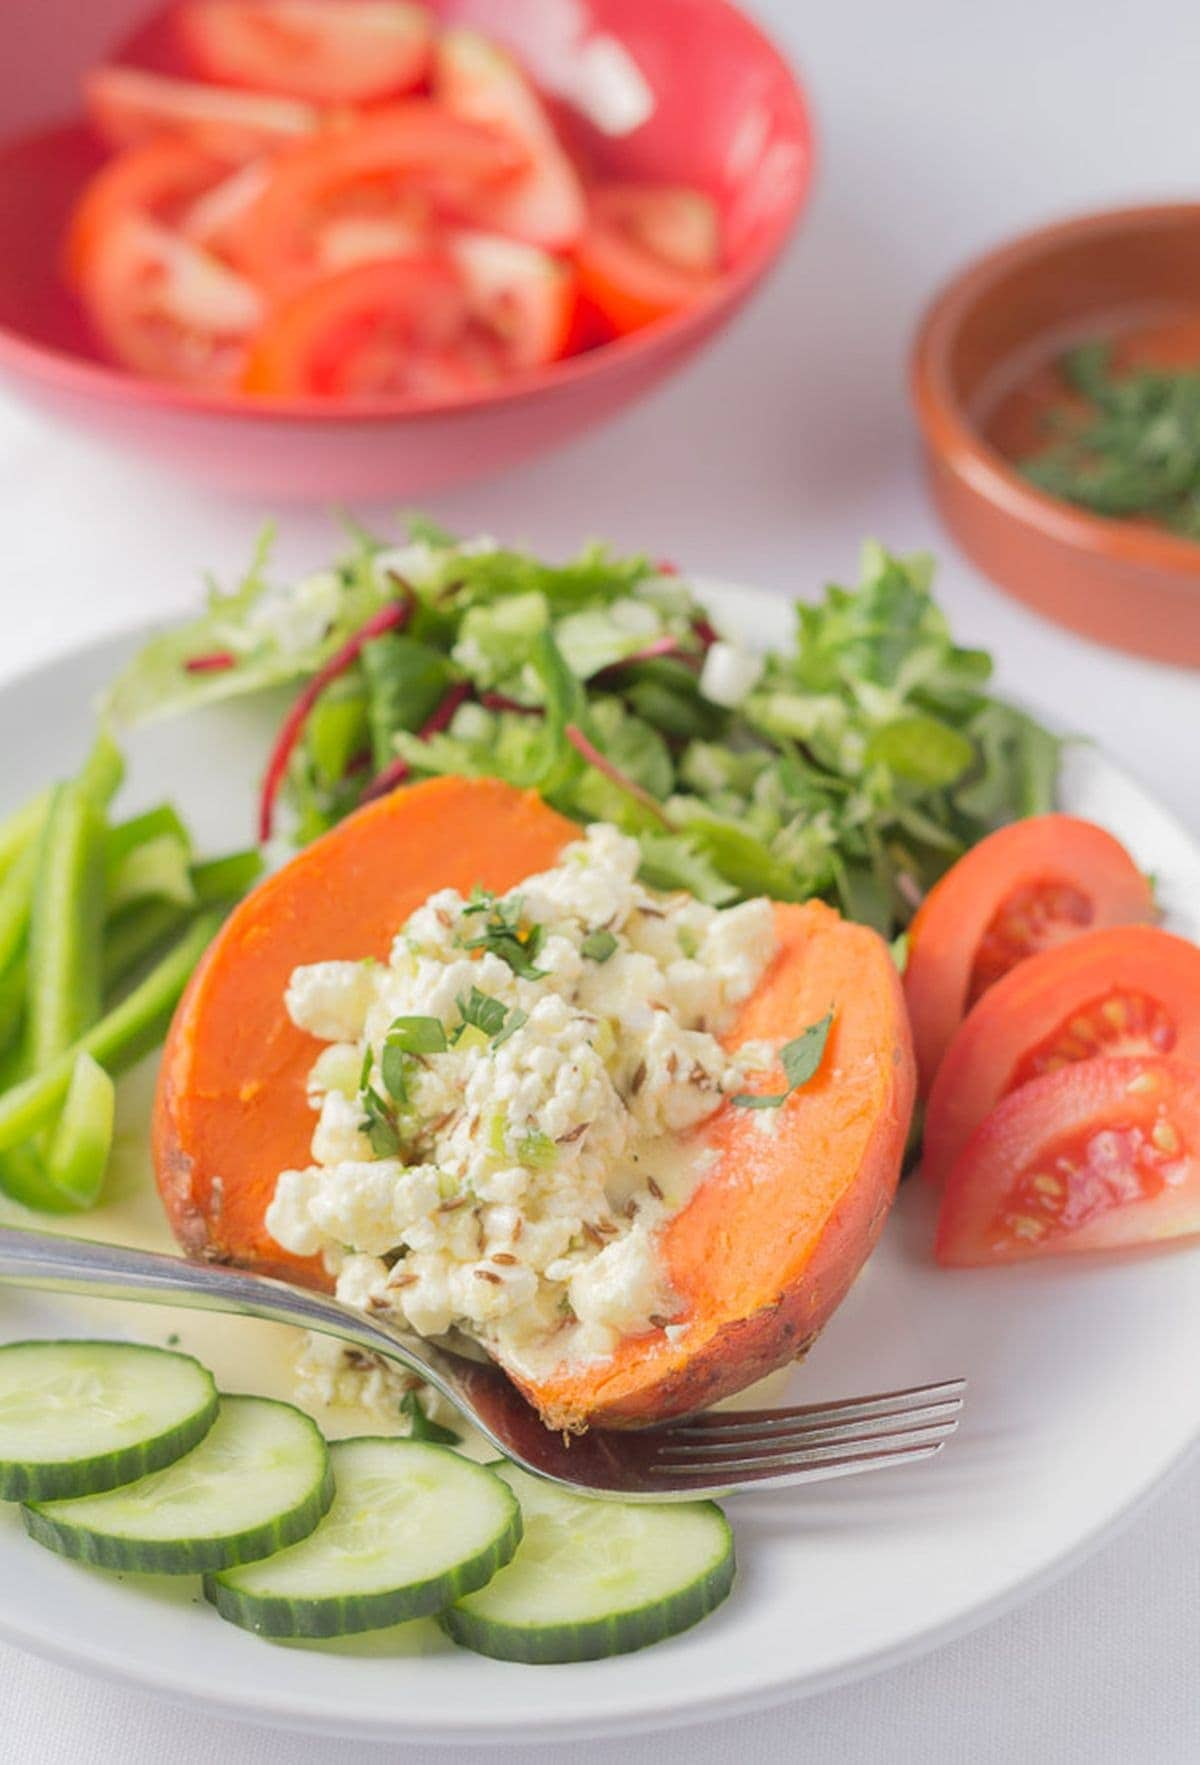 A plate with a baked sweet potato on filling with feta and orange filling and lettuce, cucumber and tomatoes around the edge of the plate.